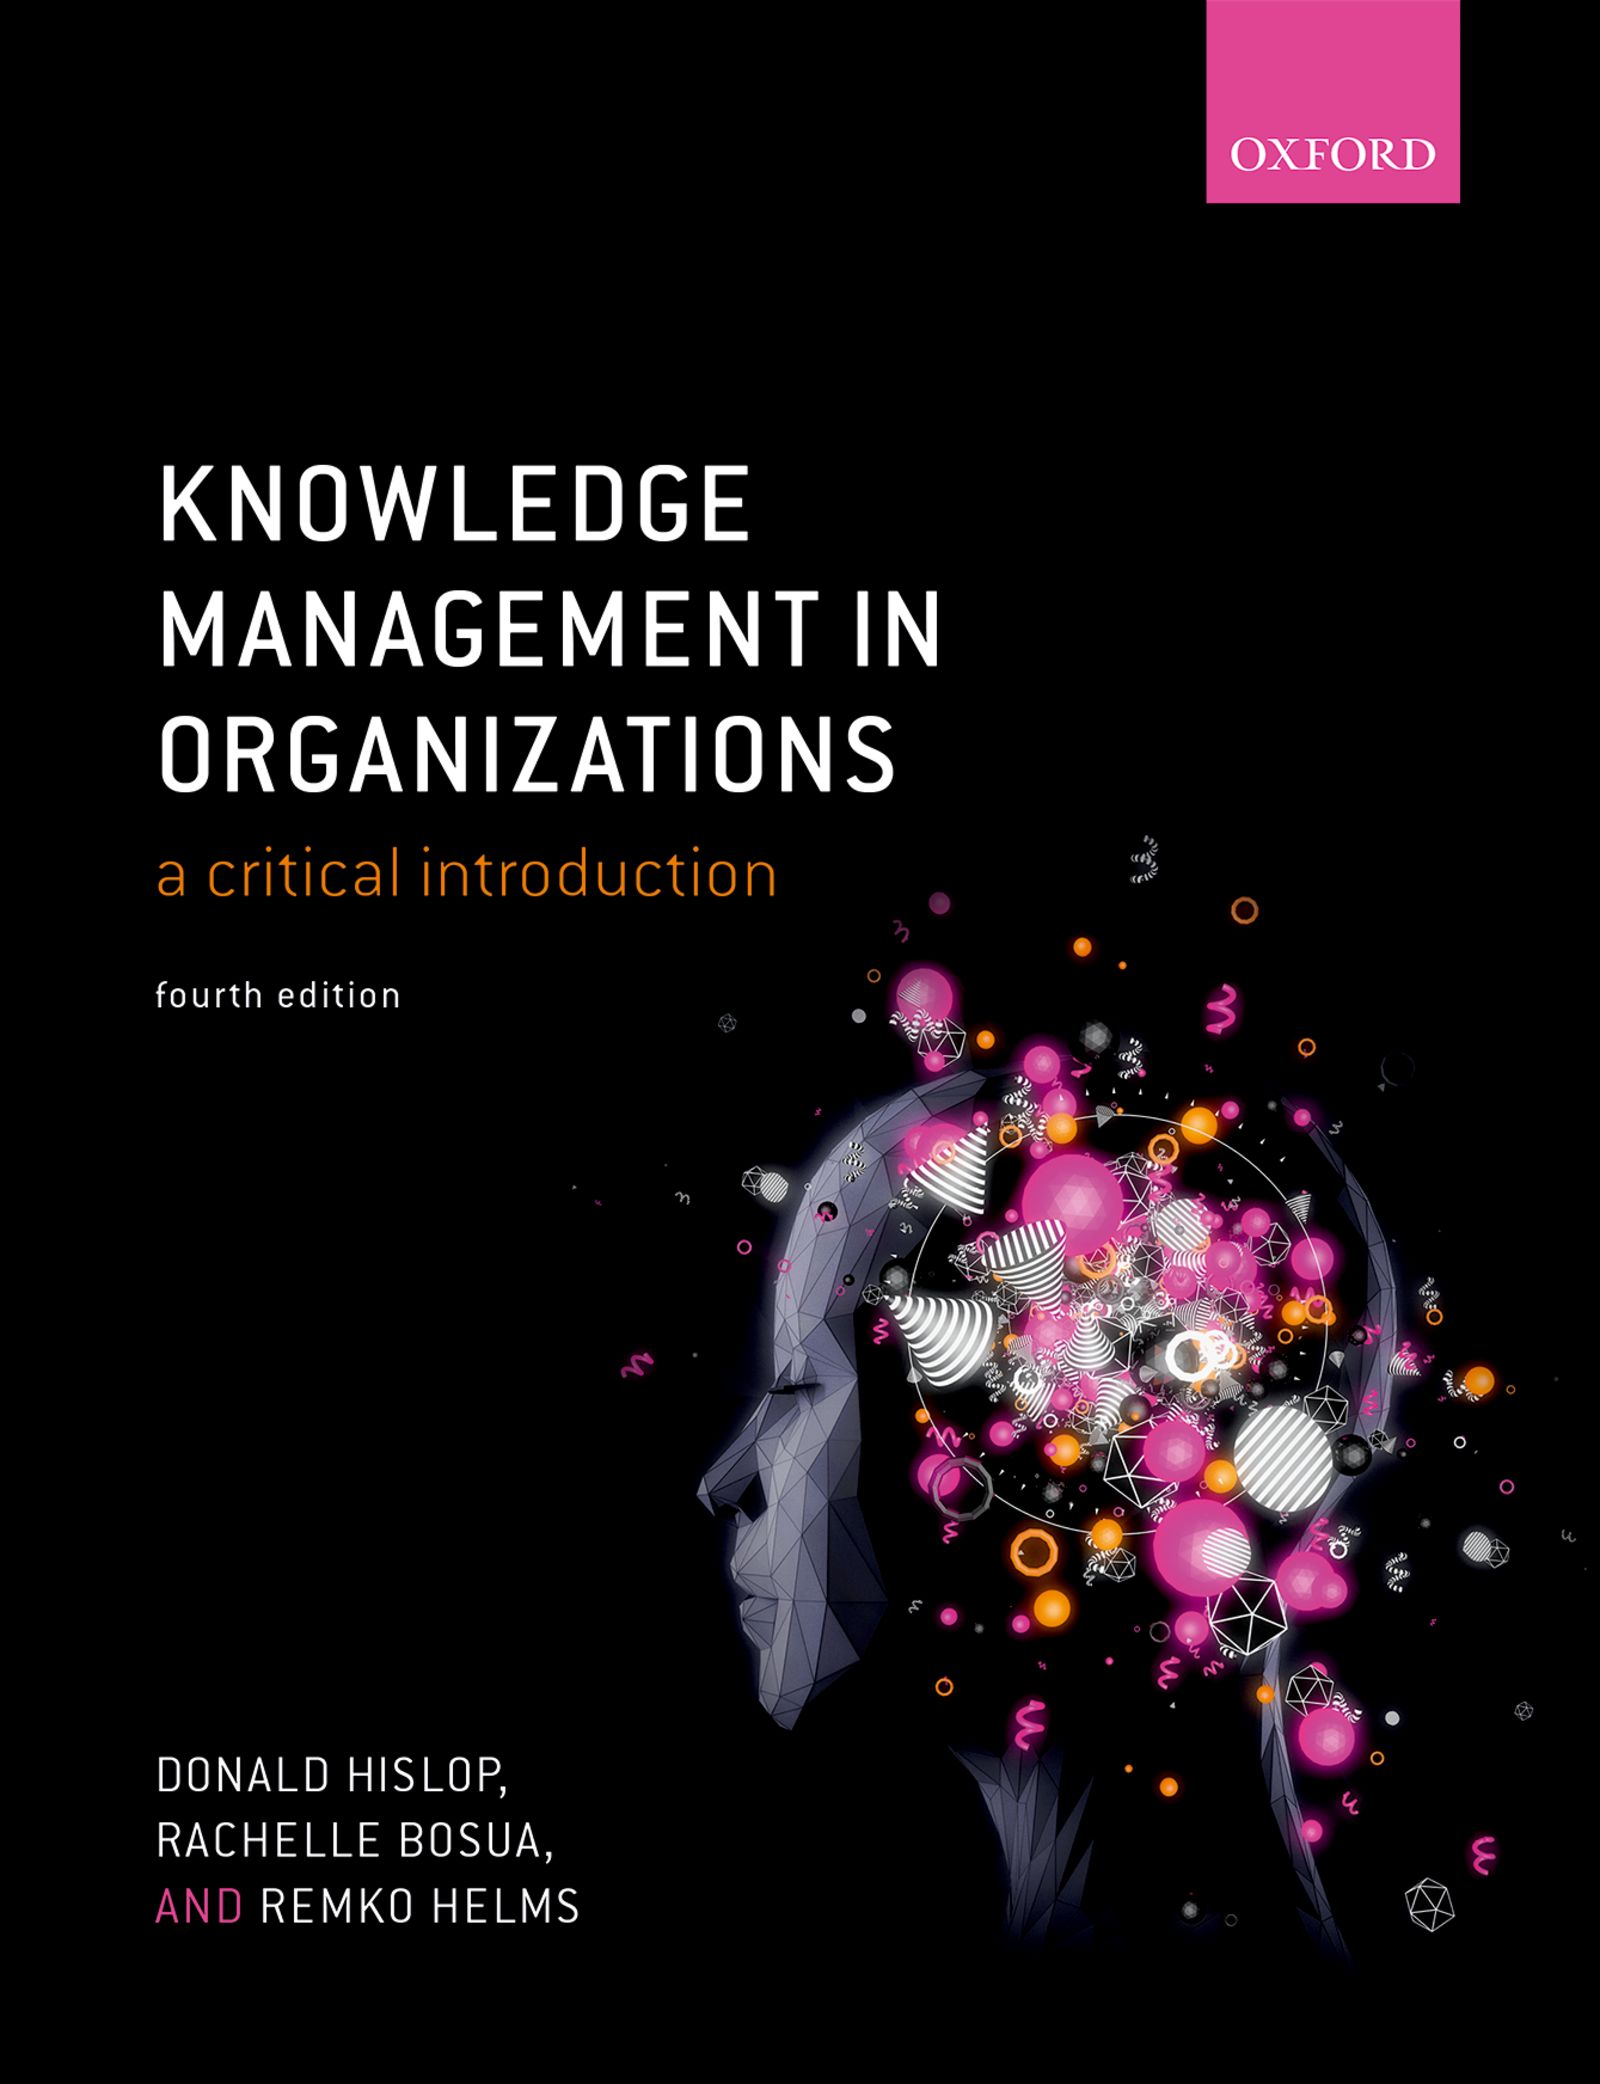 Knowledge Management in Organizations: A critical introduction 4e